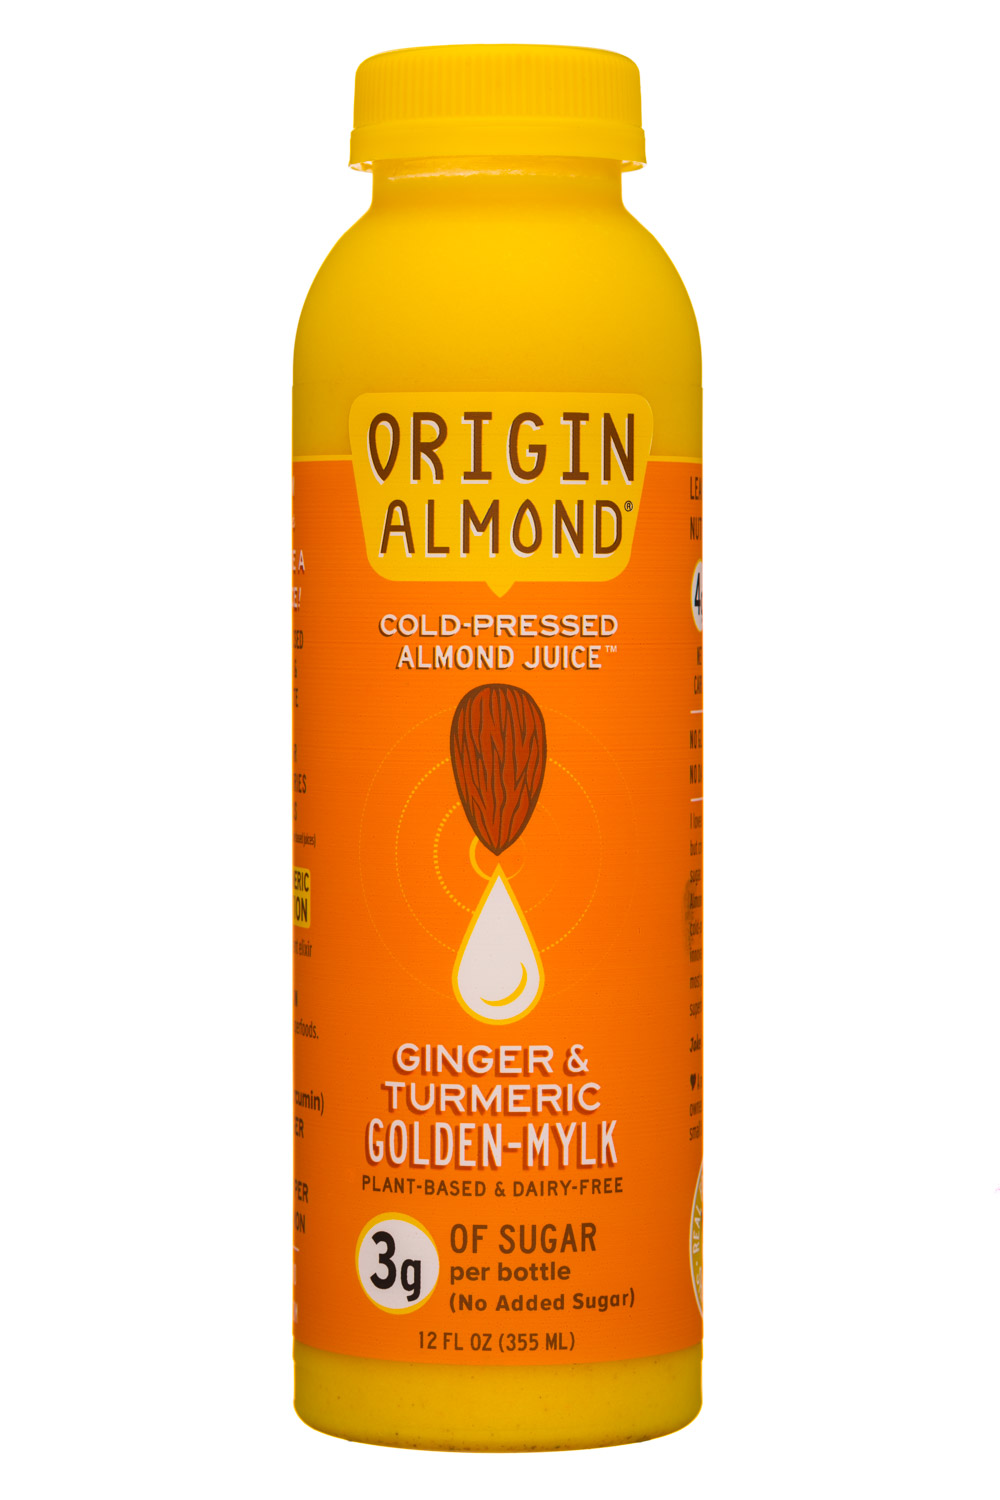 Ginger & Turmeric Golden-Mylk (2019)